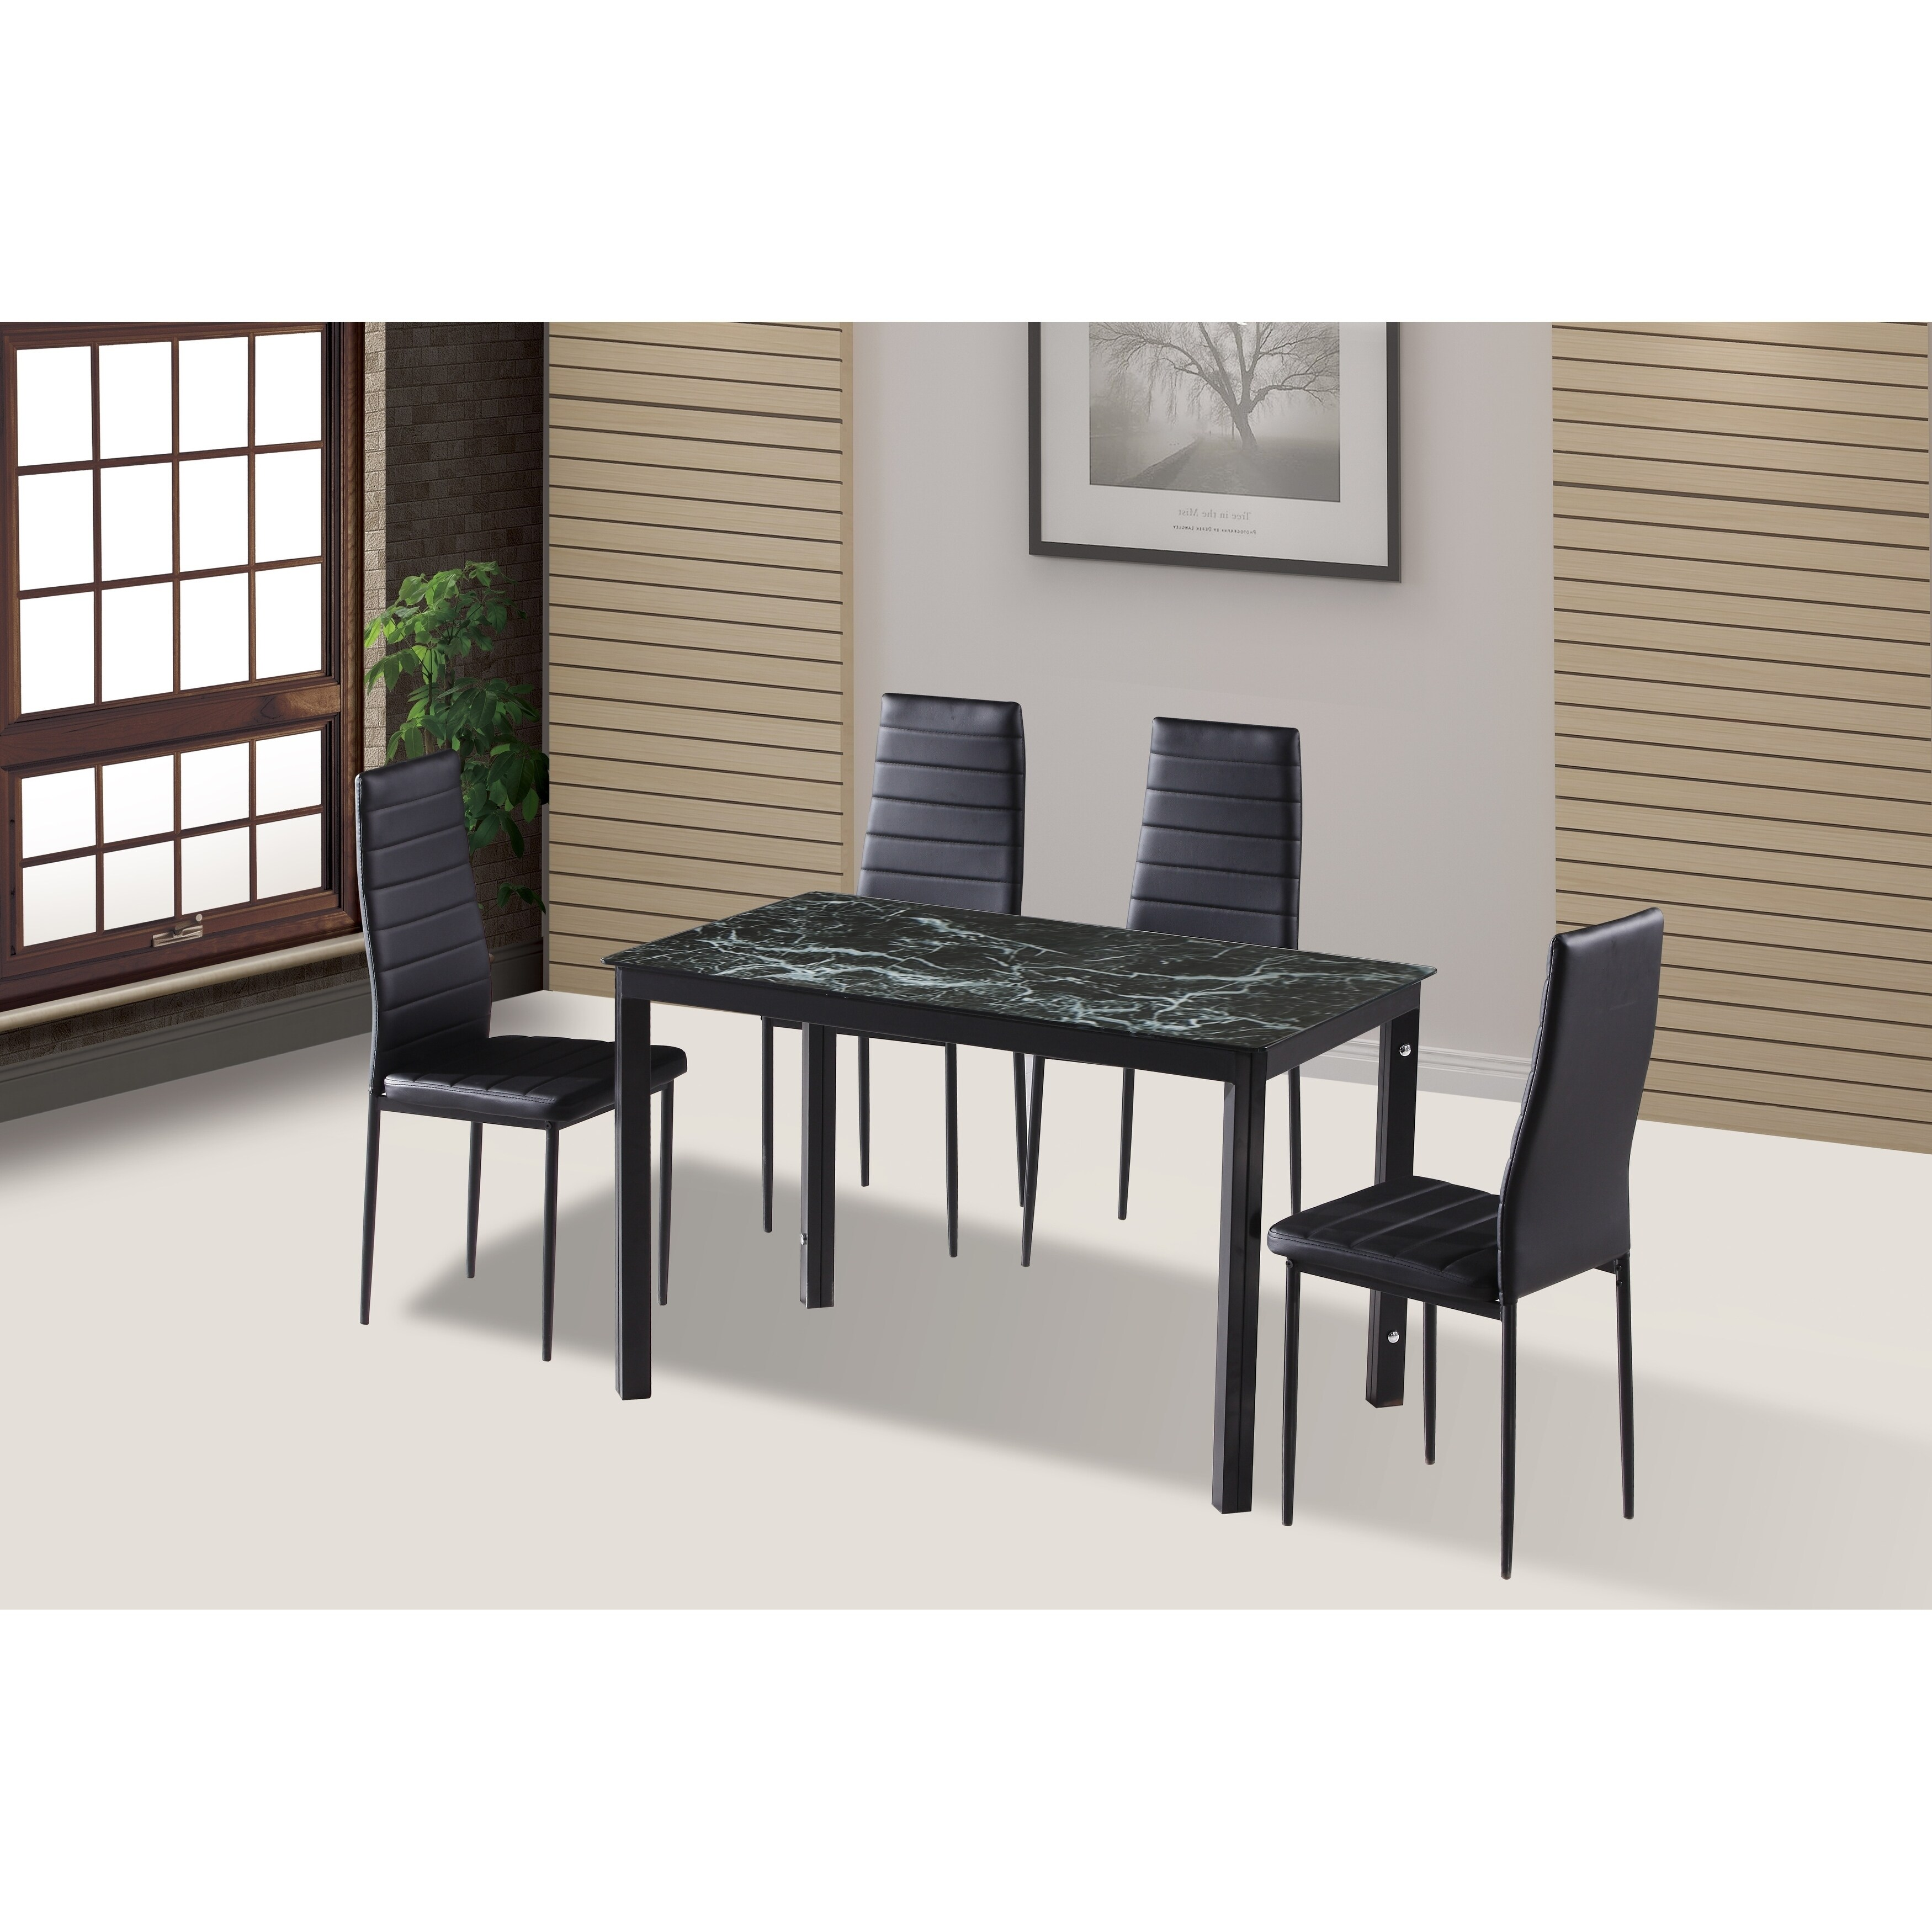 Glass Dining Table And Chairs Ids Home 7 Pieces Modern Glass Dining Table Set Faxu Leather With 6 Black Chairs